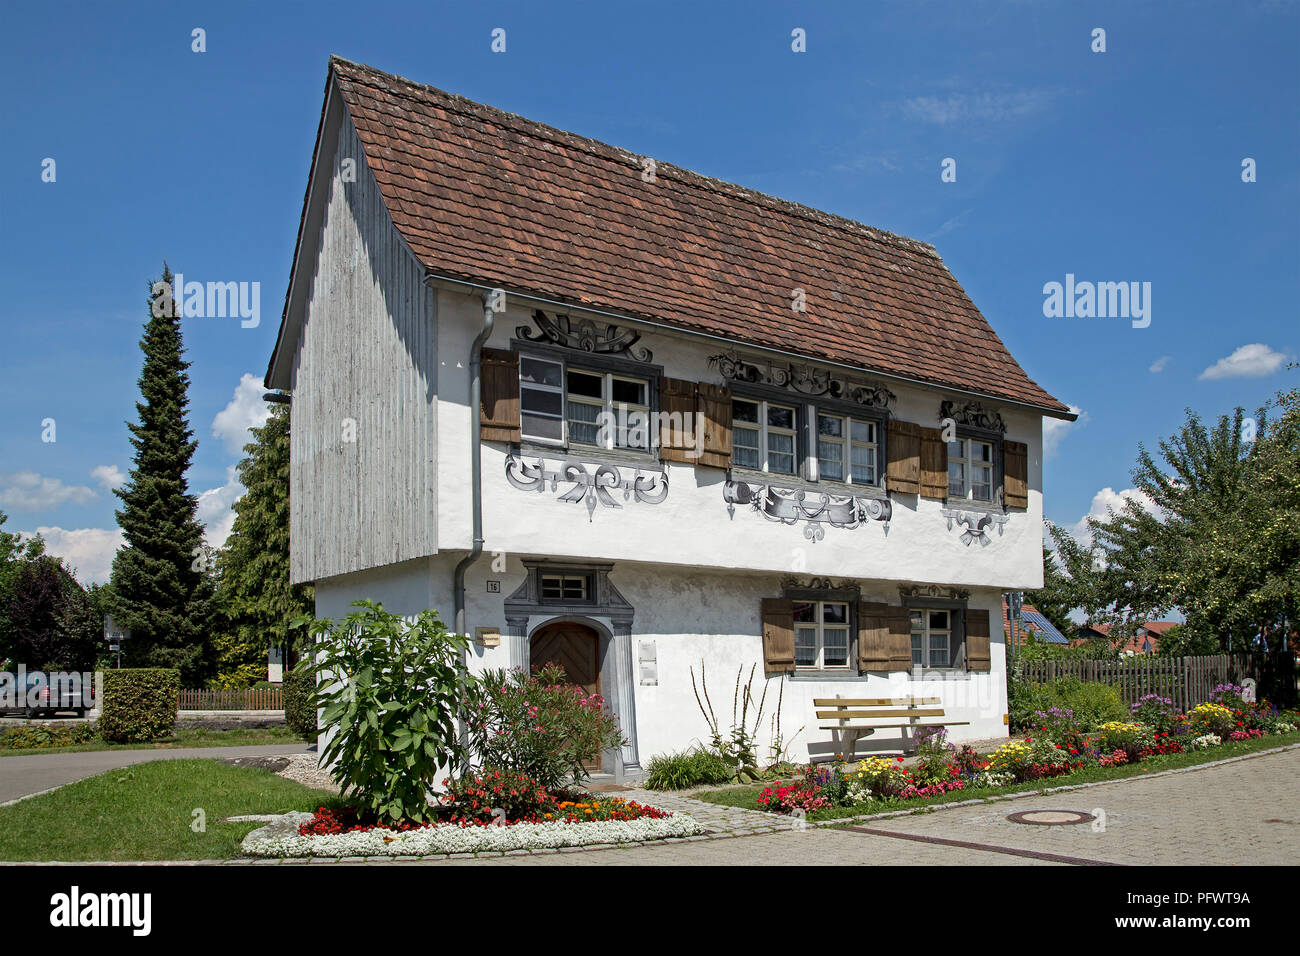 Gartenhaus (detached house), Isny, Allgaeu, Baden-Wuerttemberg, Germany Stock Photo